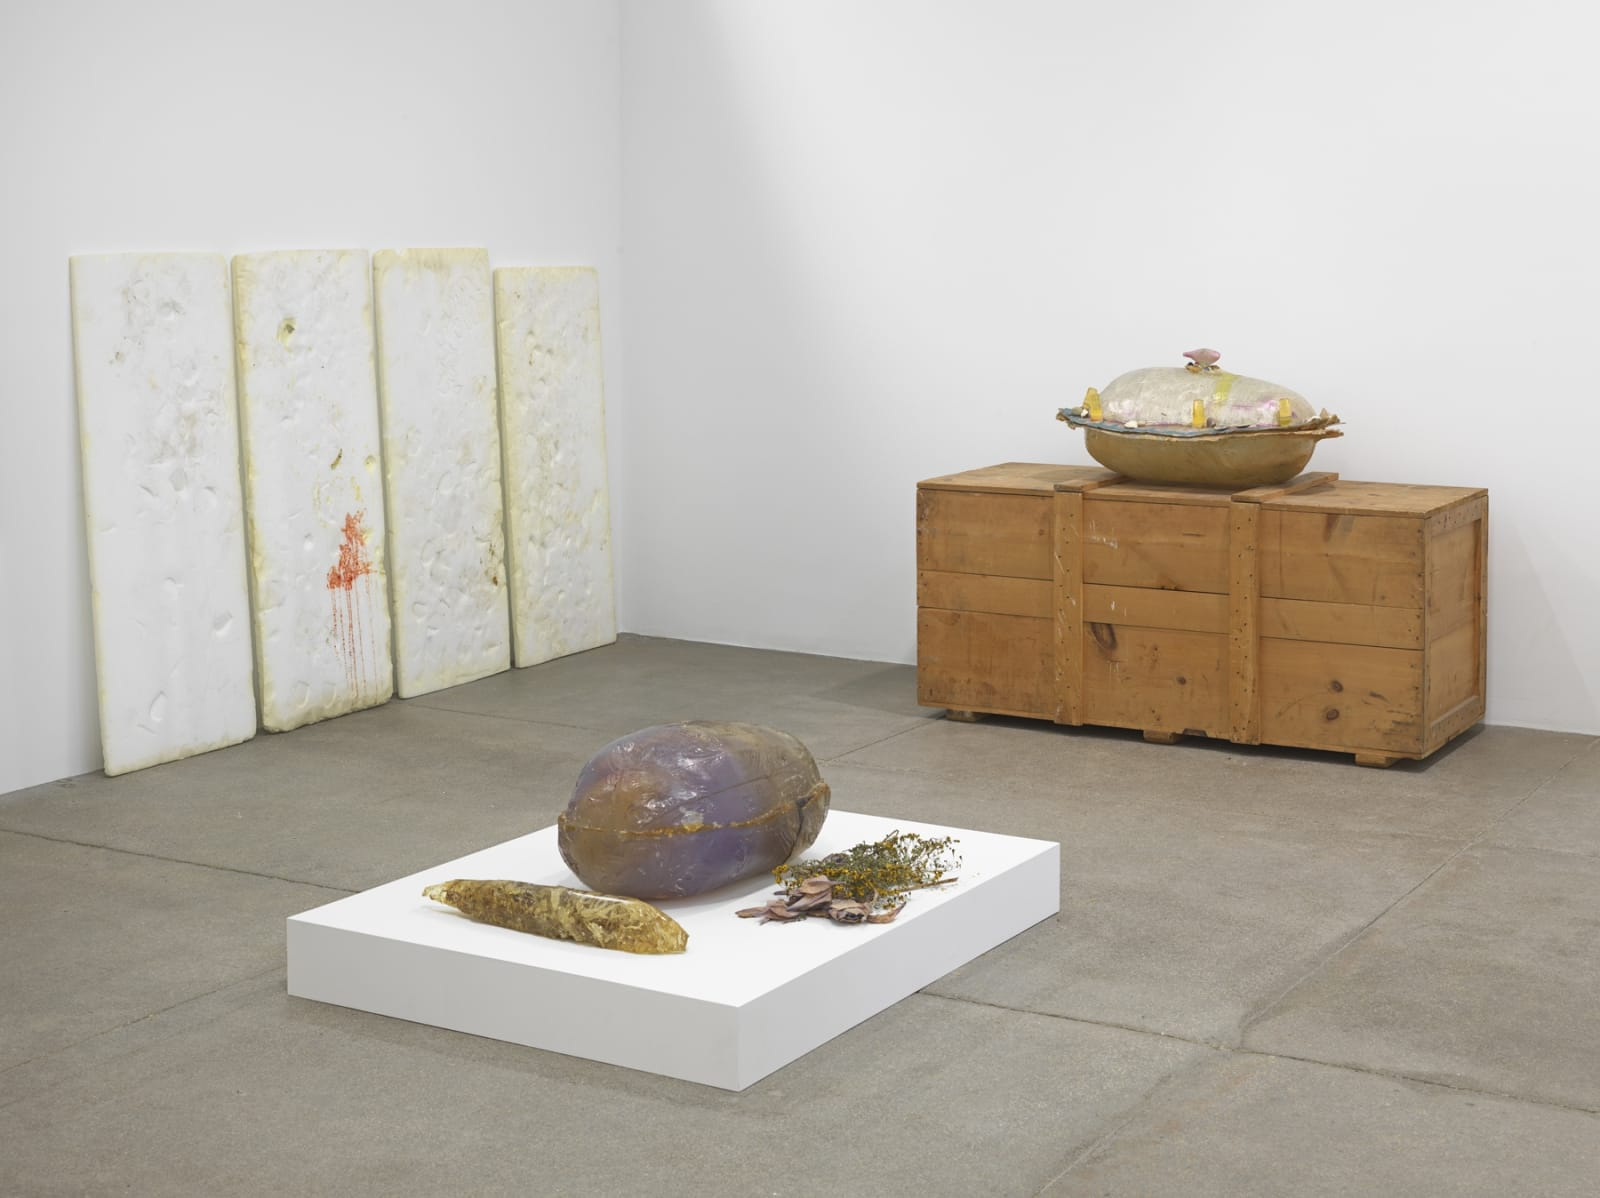 Barbara T. Smith Holy Squash, 1971 Installed dimensions variable